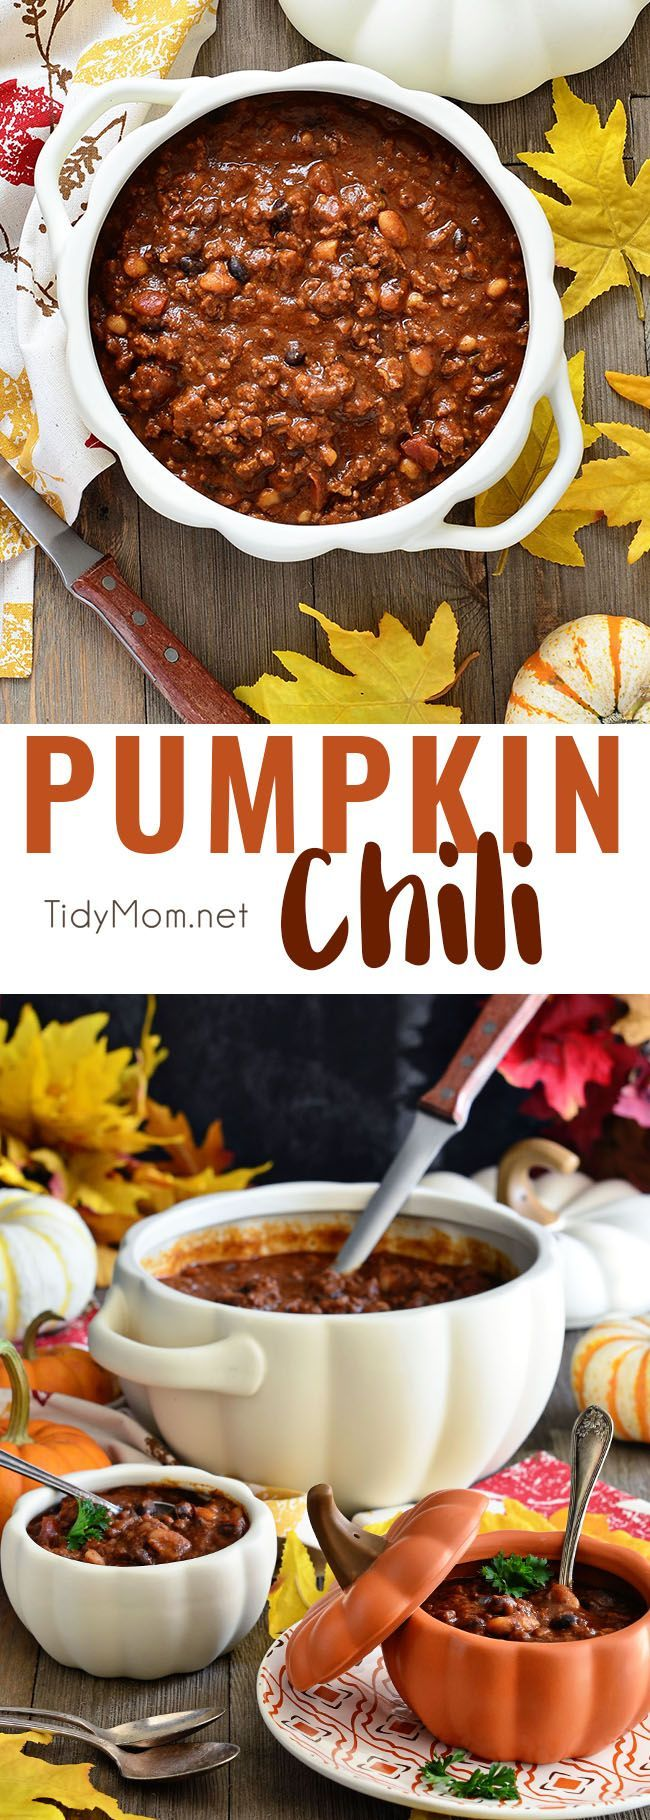 Pumpkin Chili is extra hearty with a delicious sweetness and earthy undertone that takes chili to a whole new level of good. The perfect way to knock off the chill and satisfy hungry bellies.